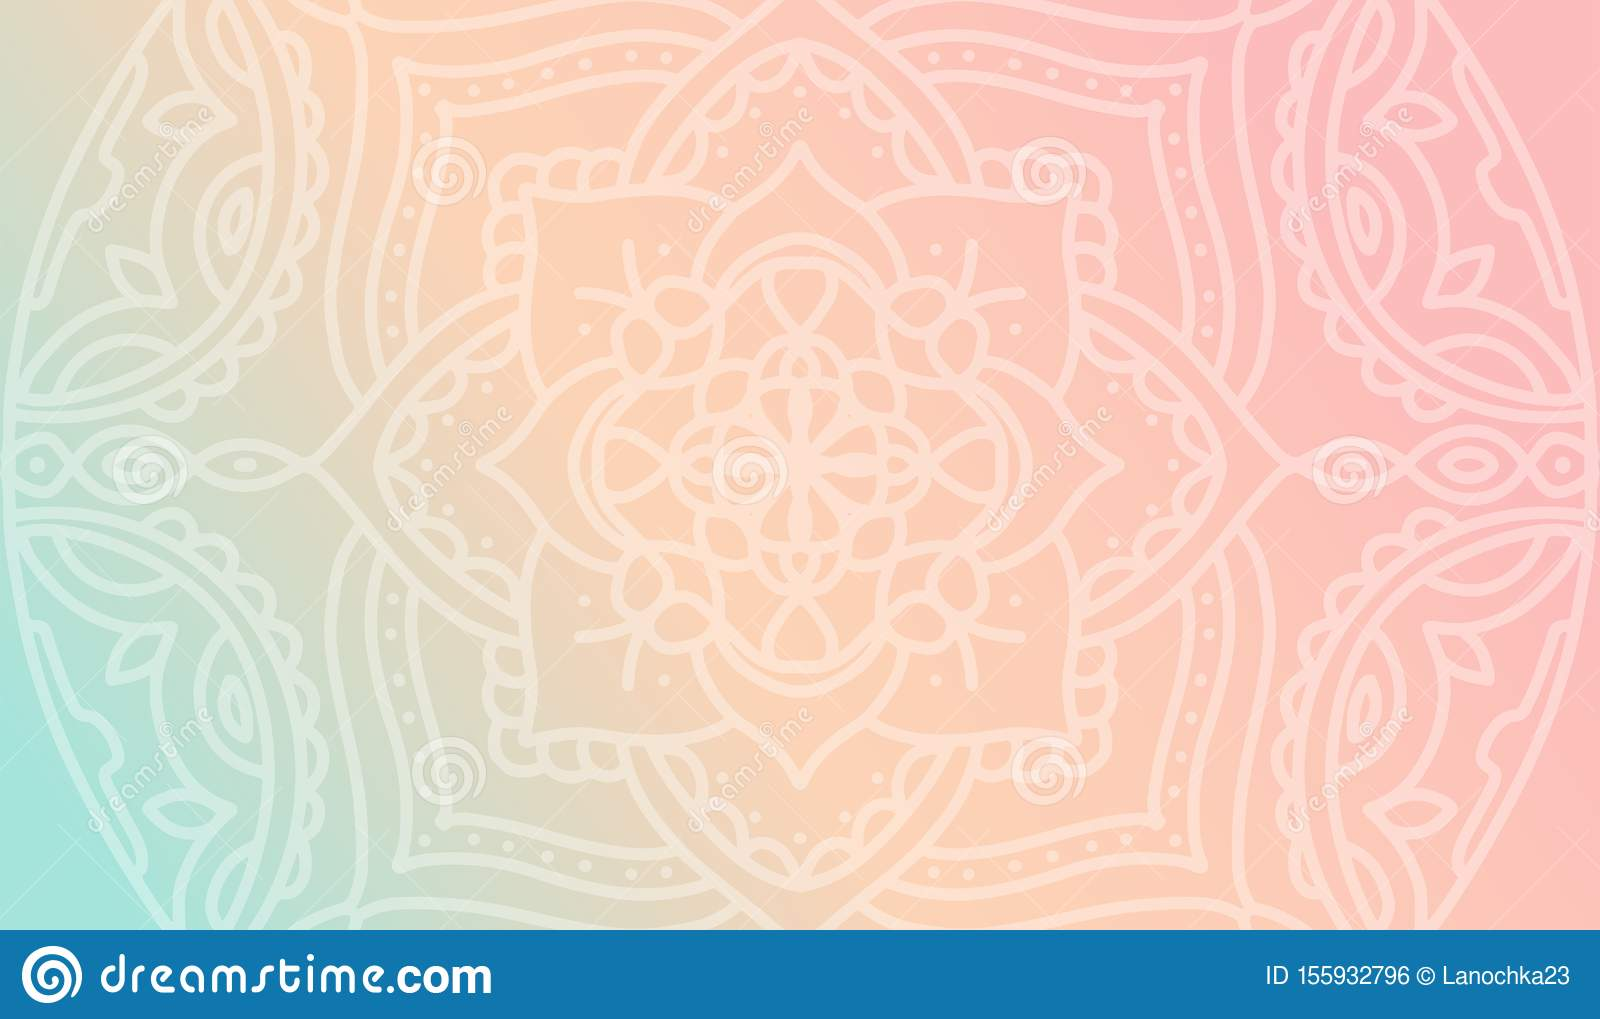 Dreamy Peach Pink Gradient Wallpaper With Mandala Pattern Vector Horizontal Background For Meditation Poster Banner For Yoga Stock Illustration Illustration Of Oriental Arabic 155932796